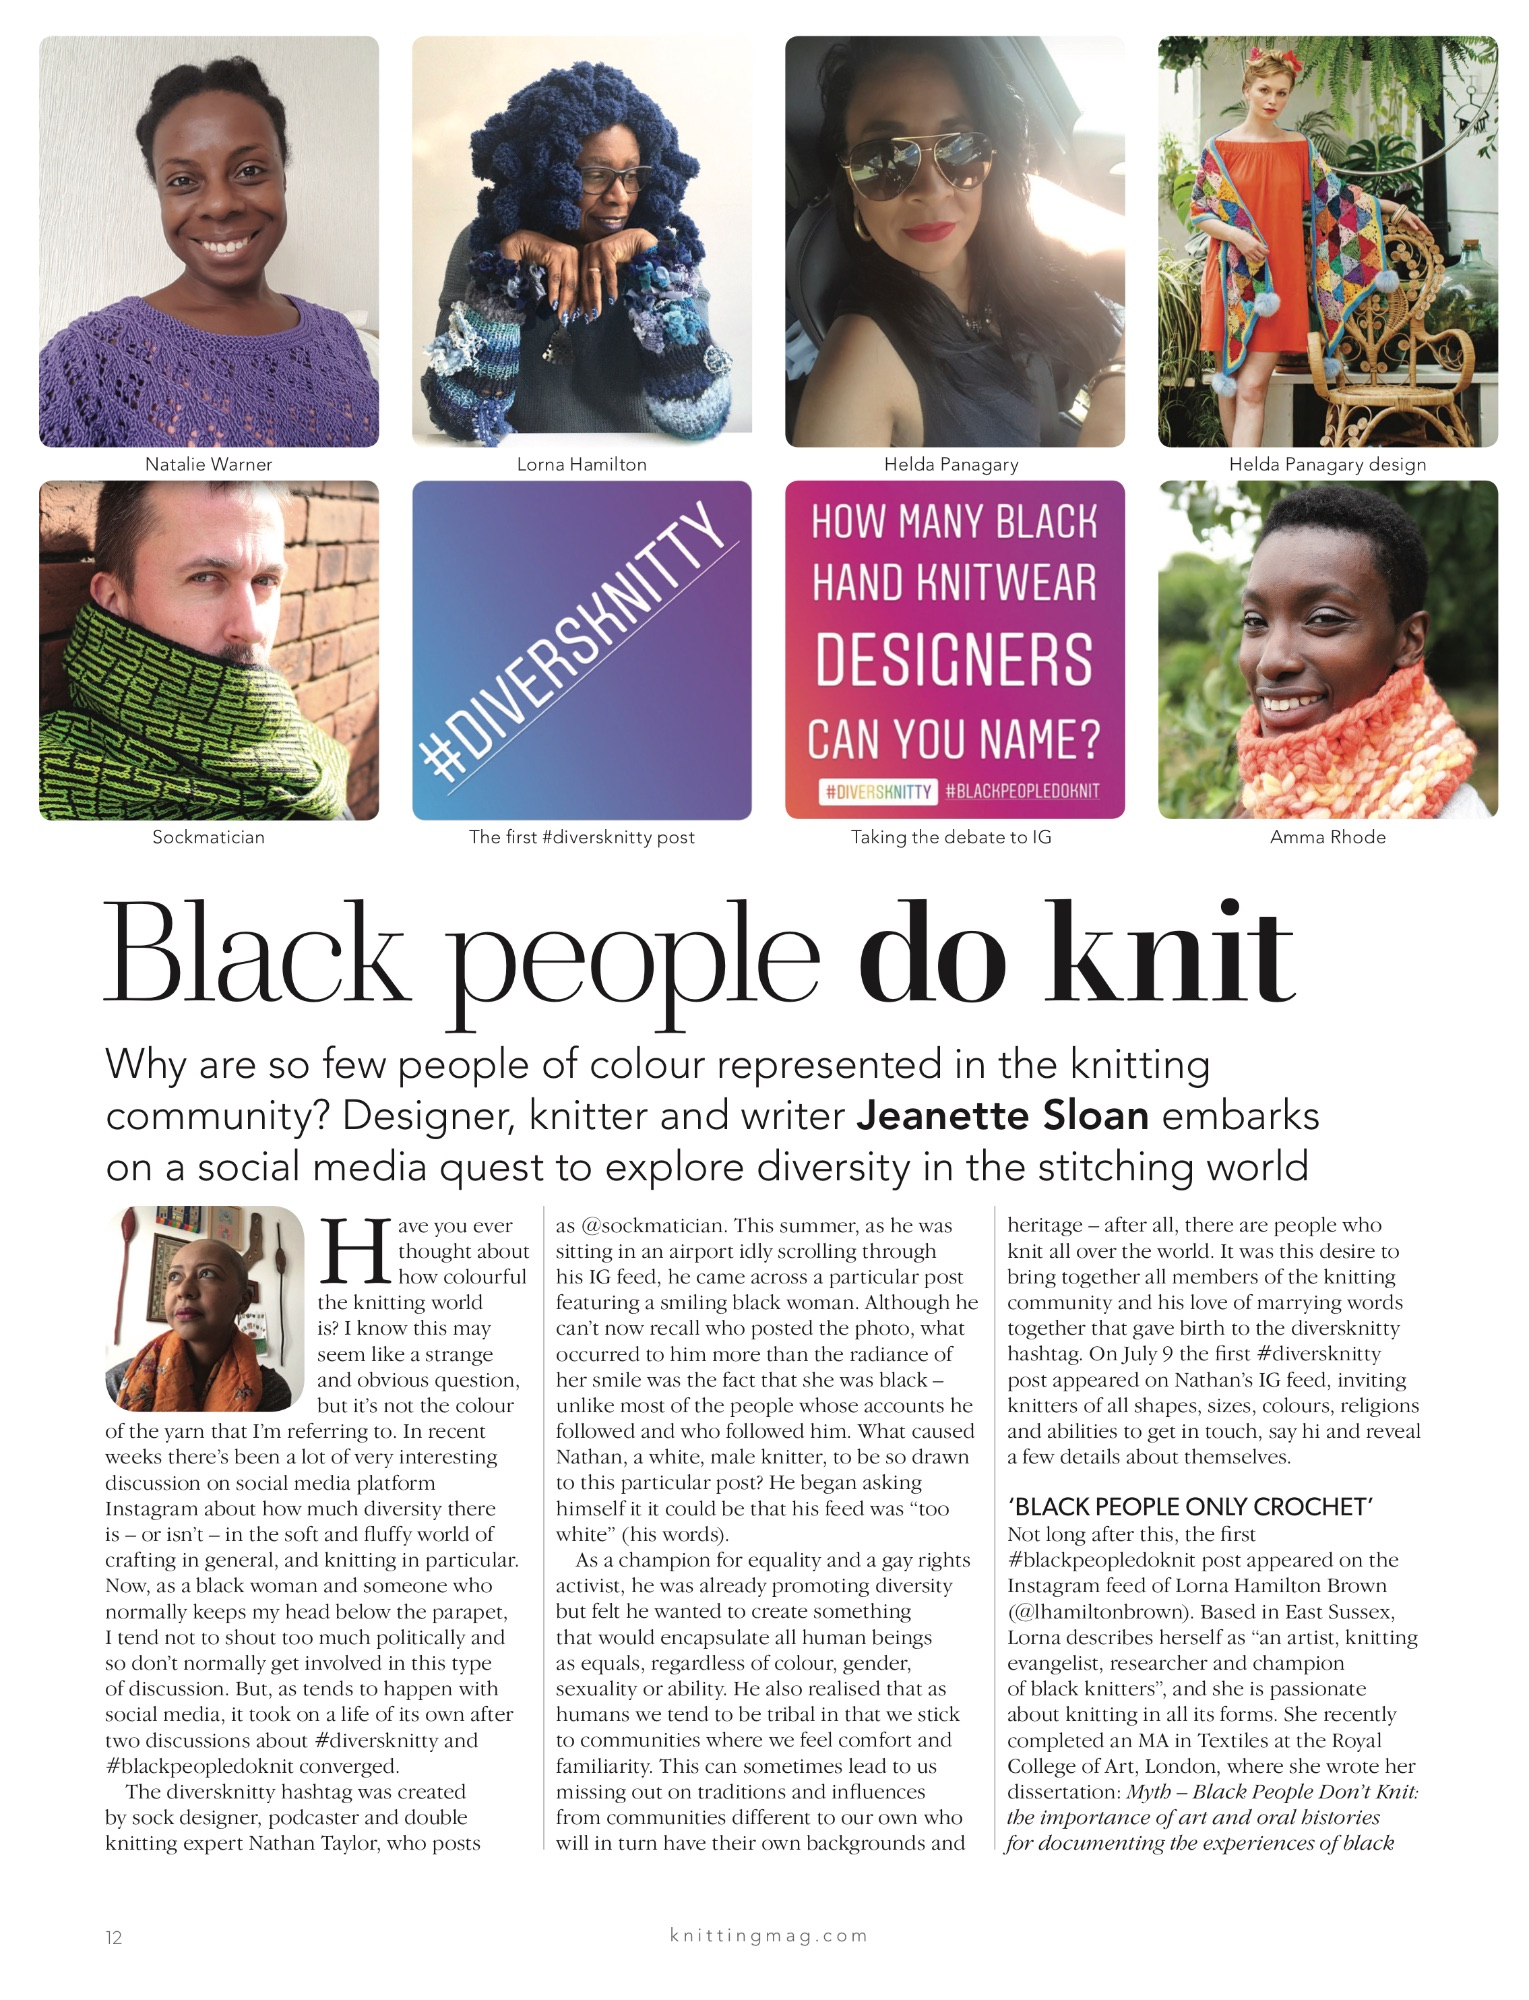 Black people do knit article Knitting Magazine issue 187